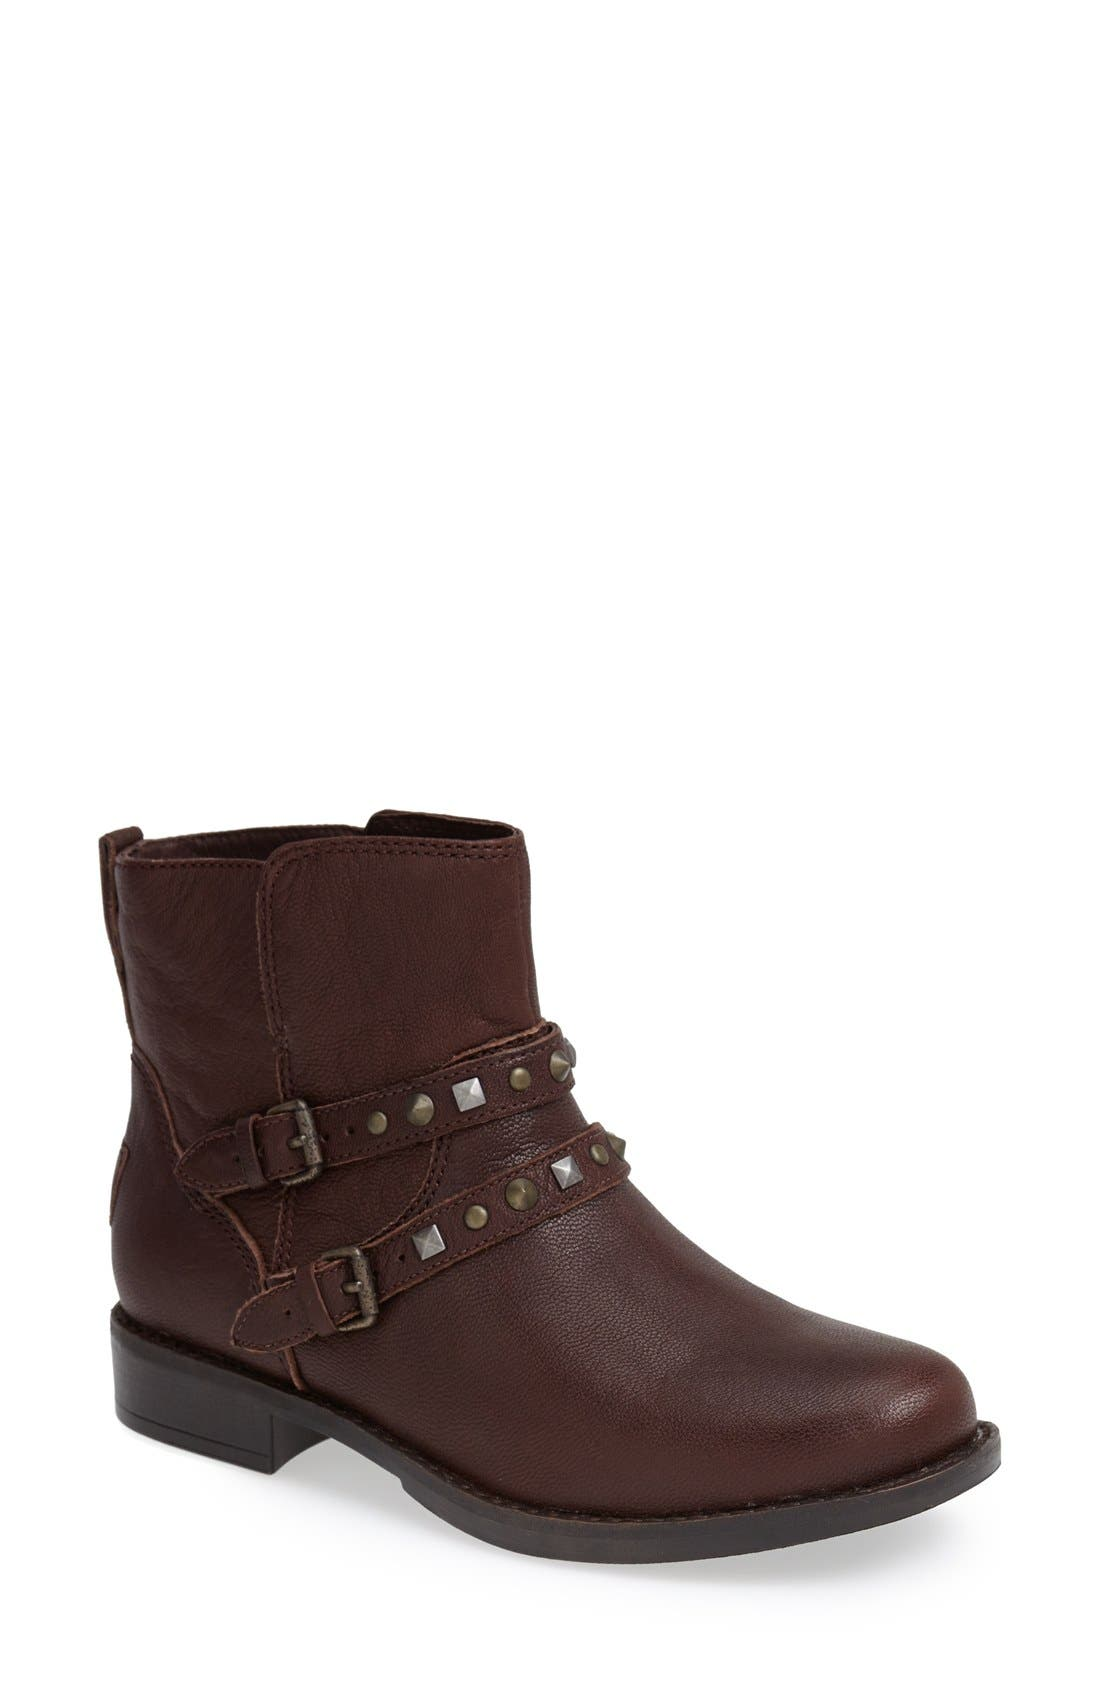 Main Image - UGG W CAMILE BOOT